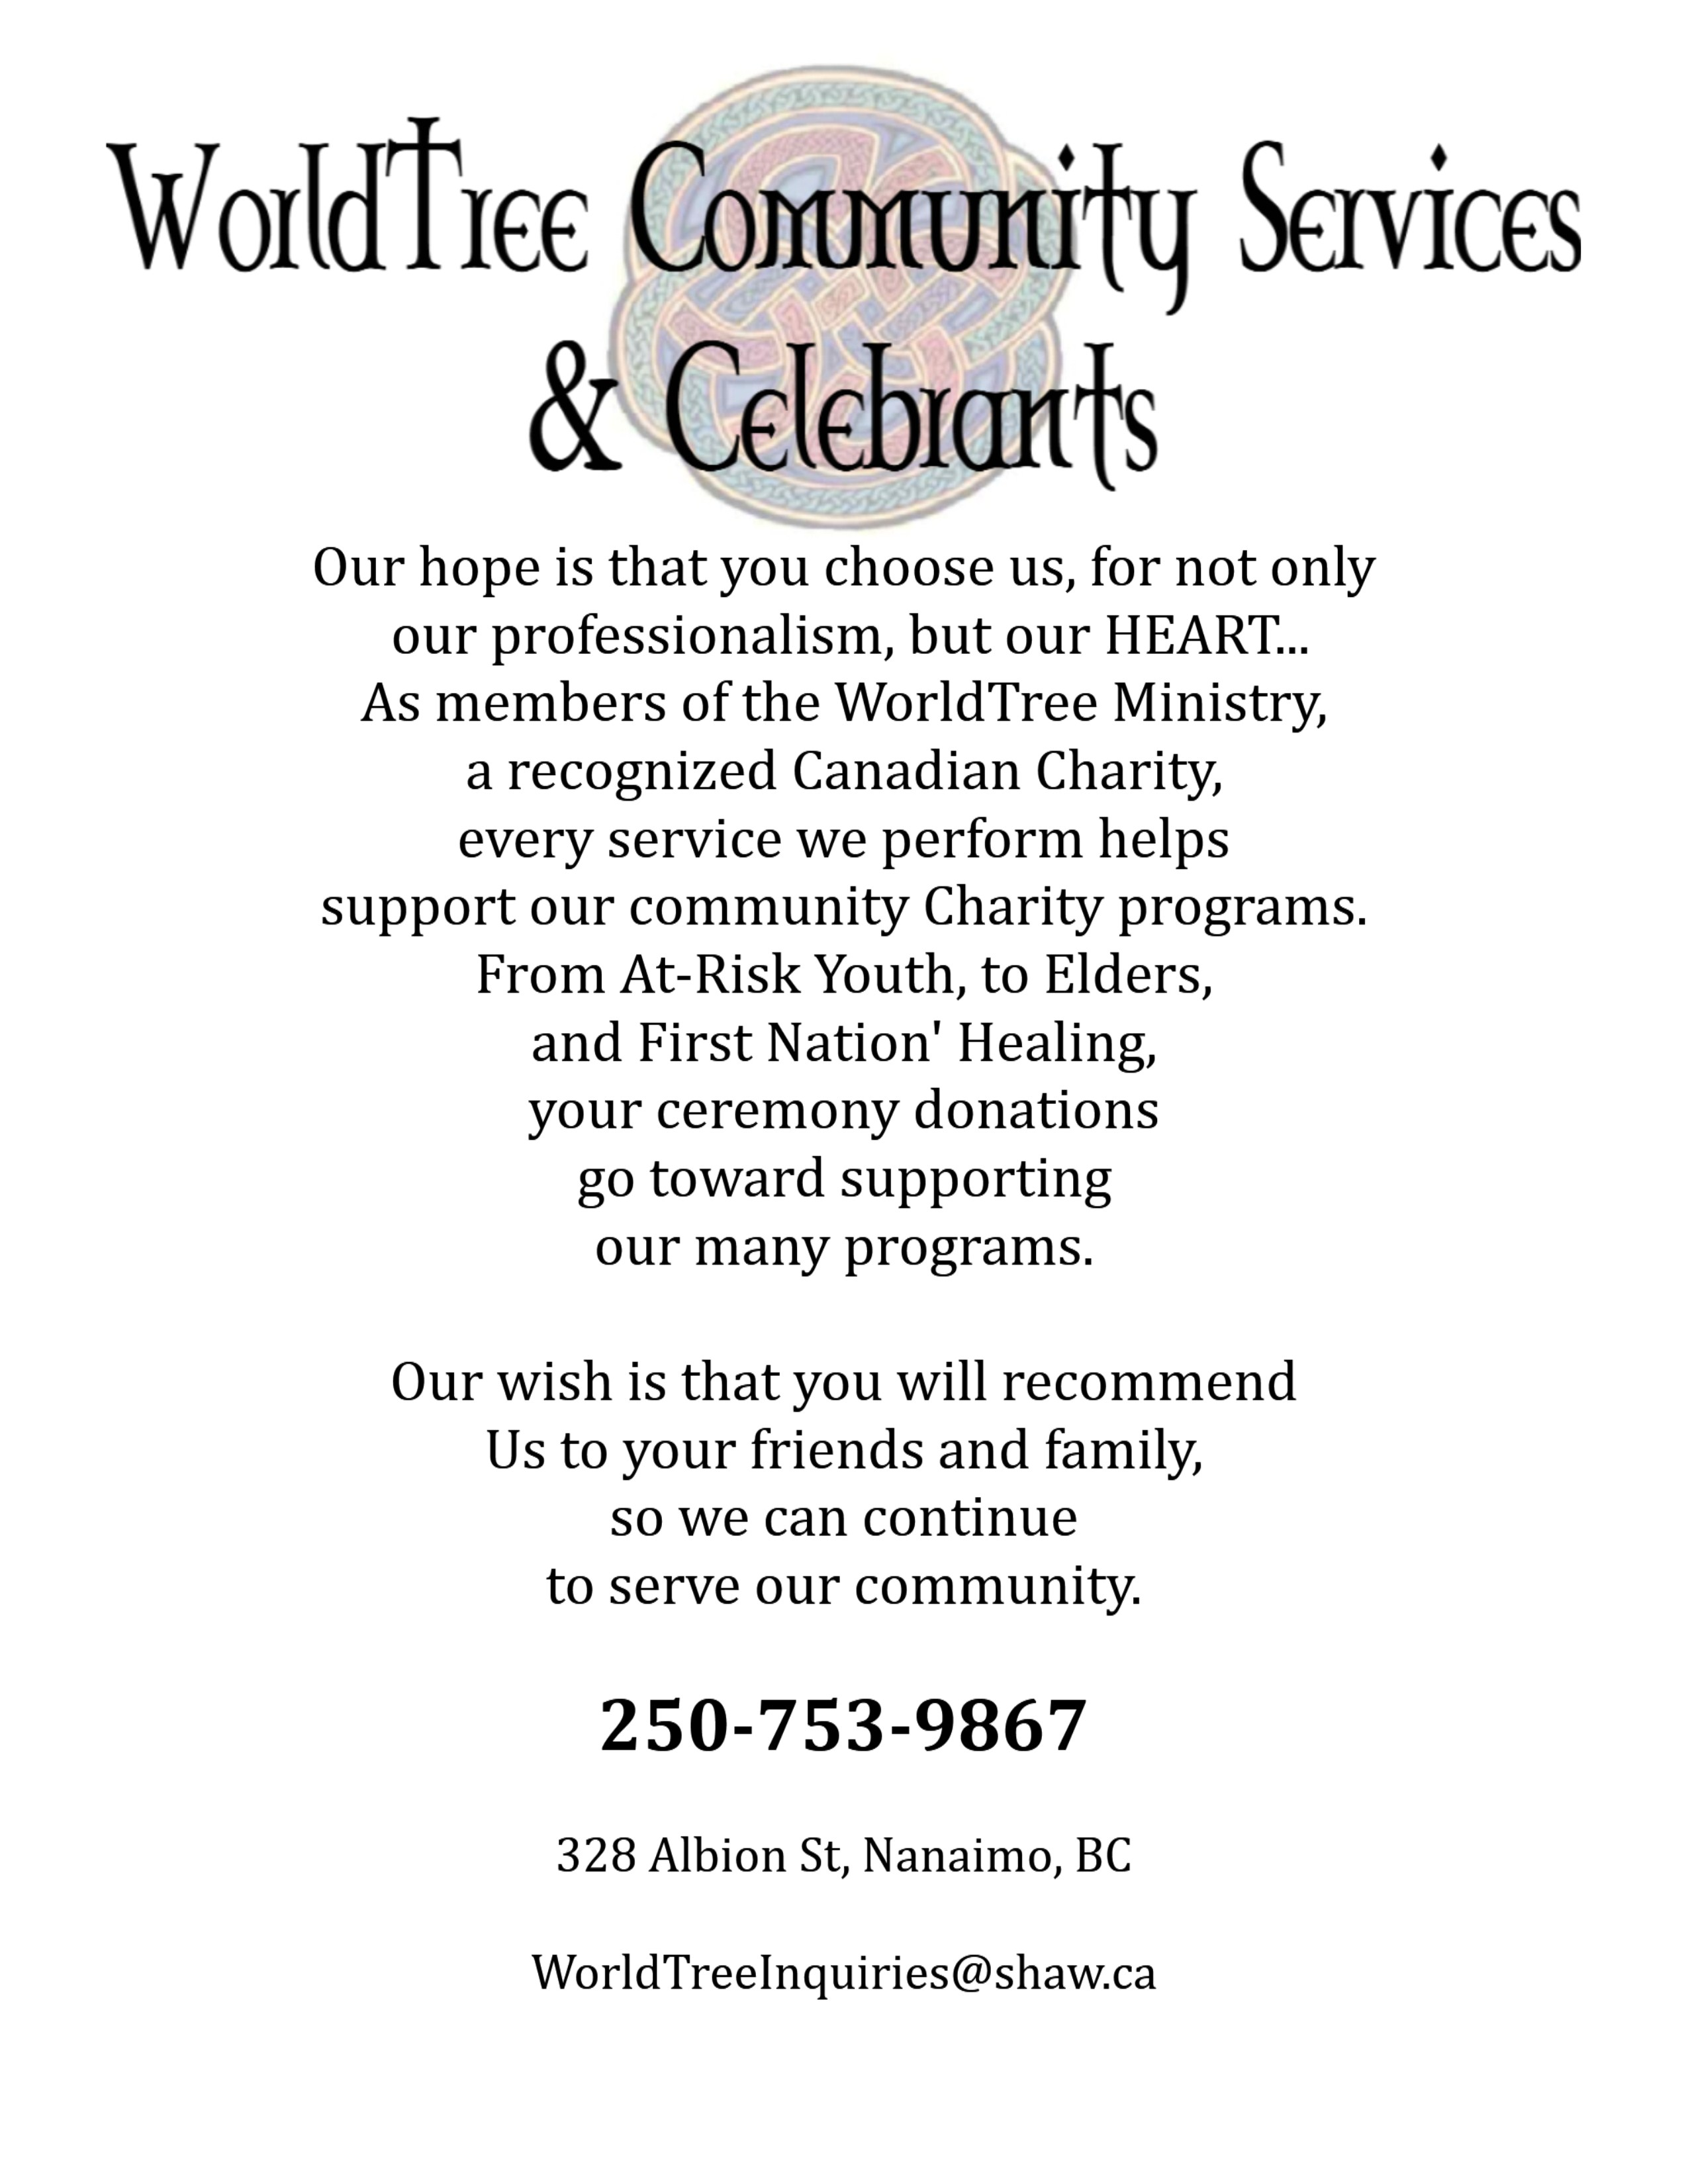 WTC services charity poster-celebrants